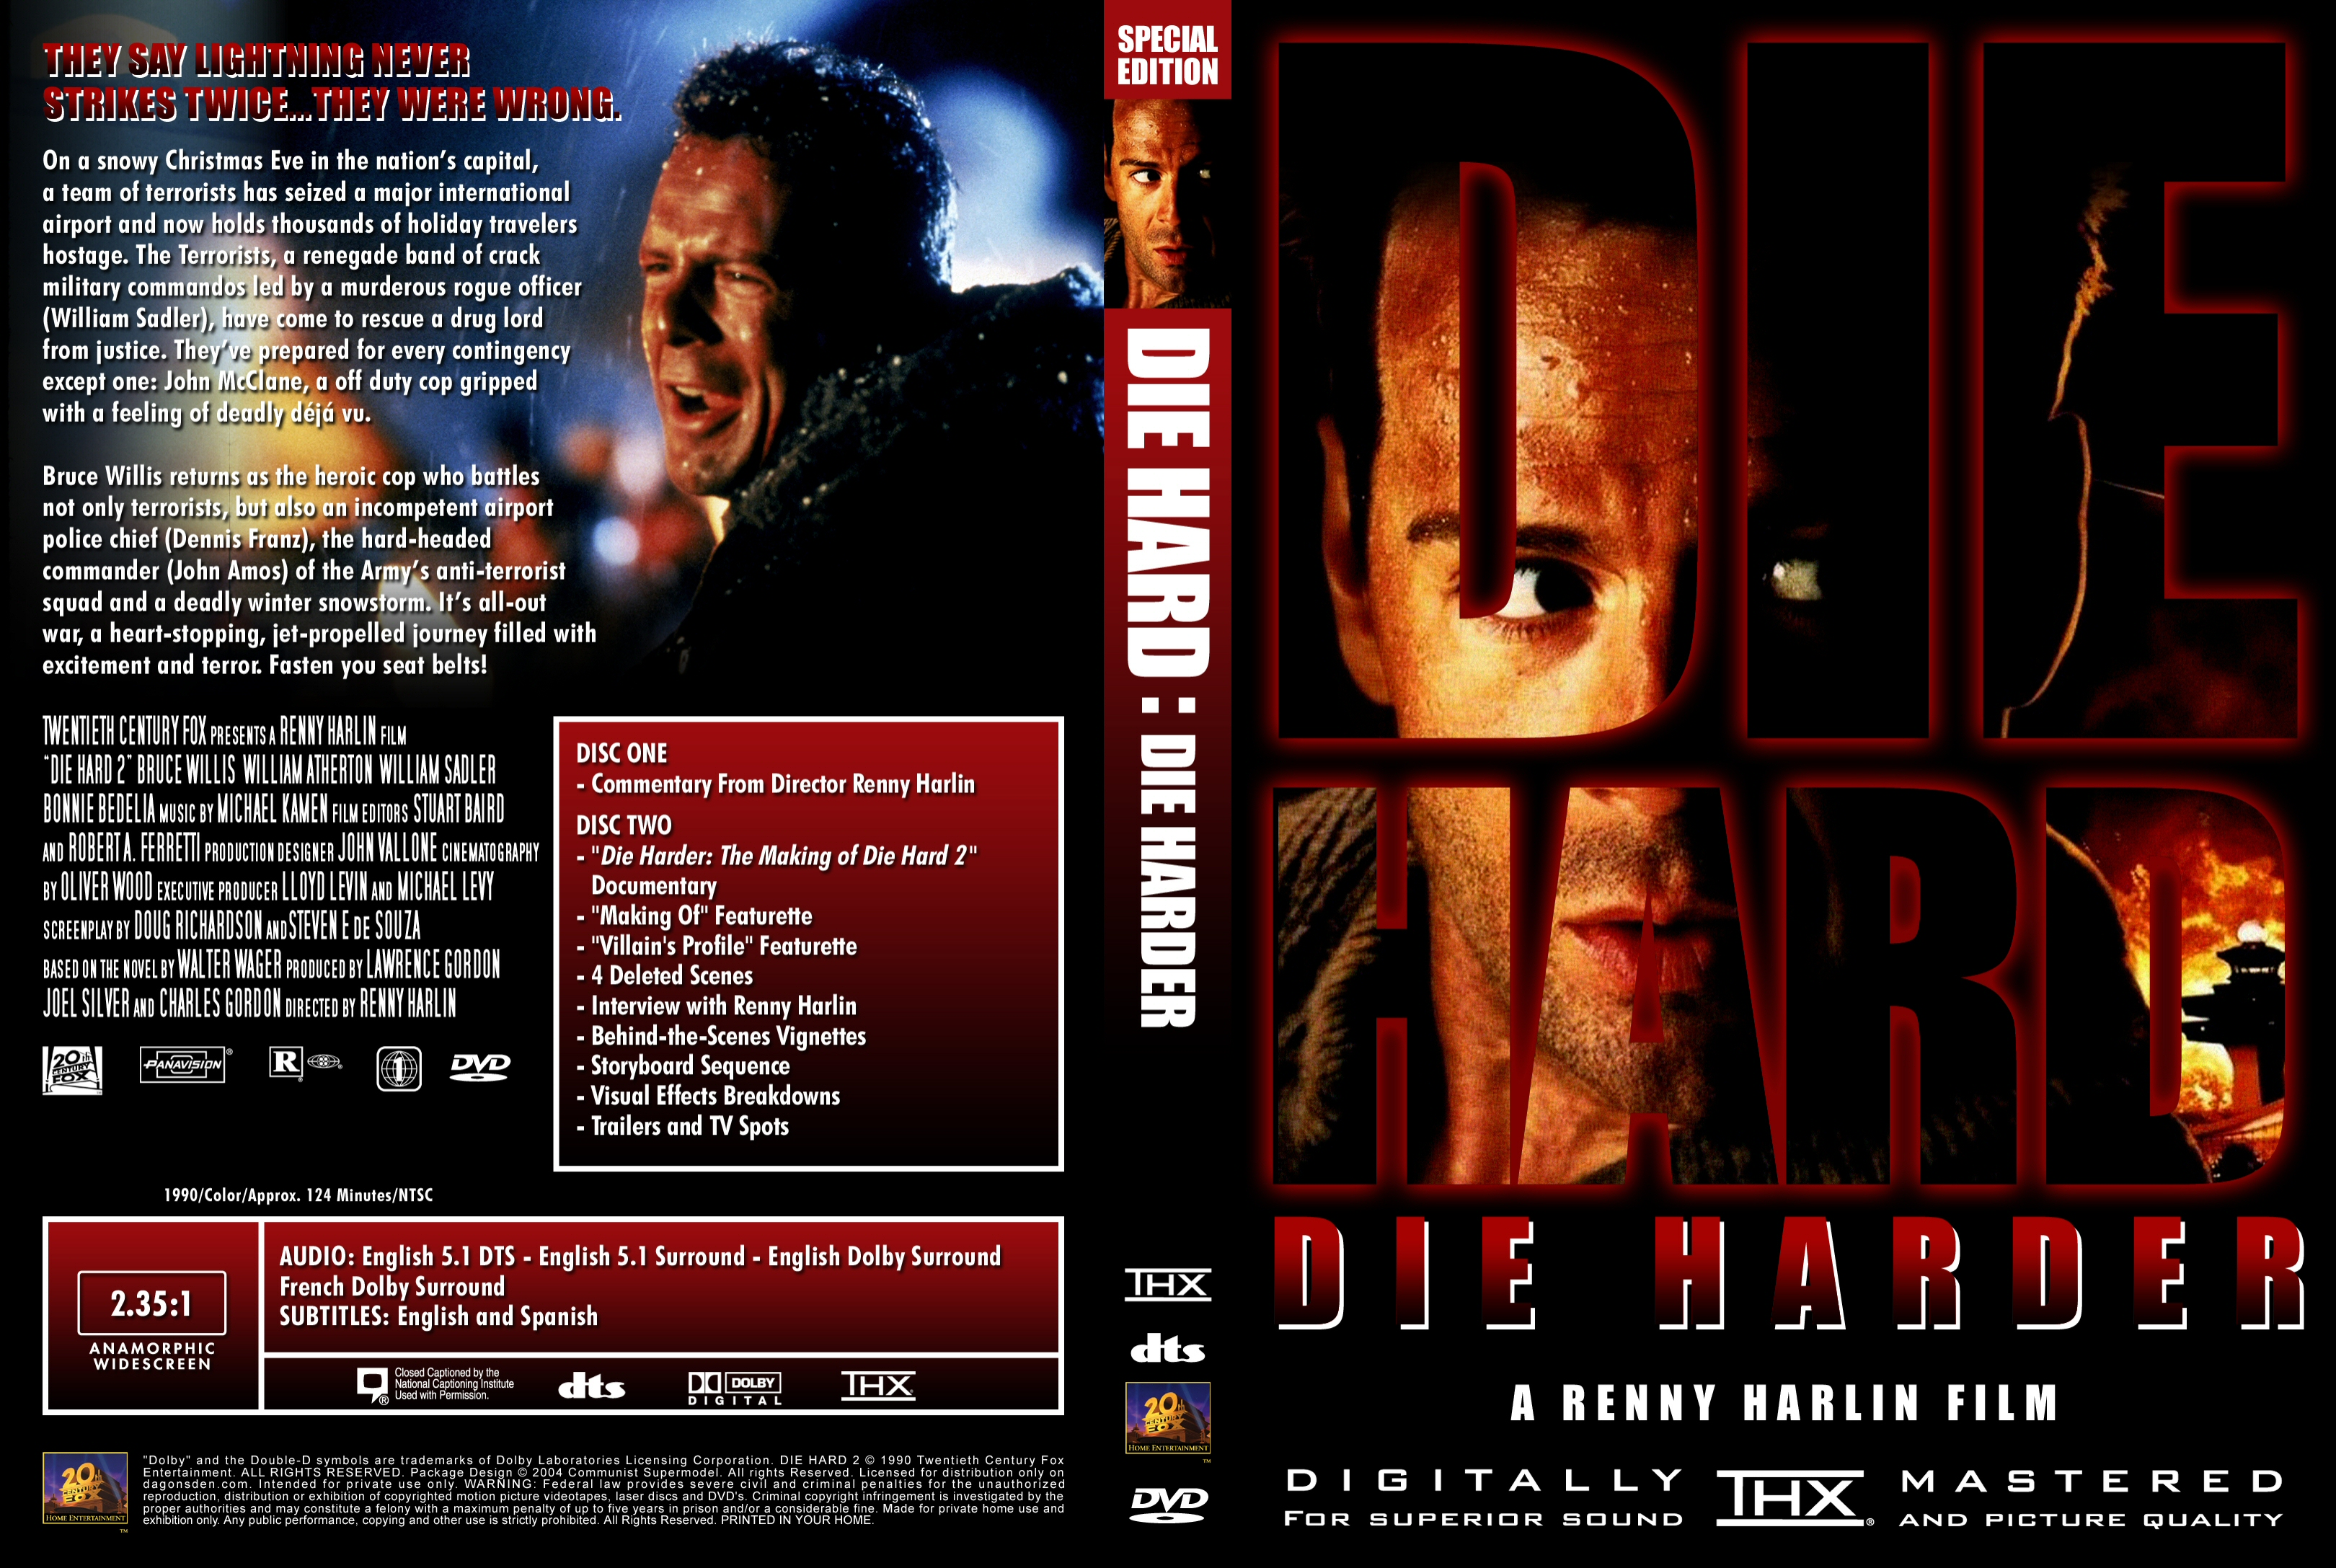 Die Hard 2 Dvd Covers Cover Century Over 500 000 Album Art Covers For Free